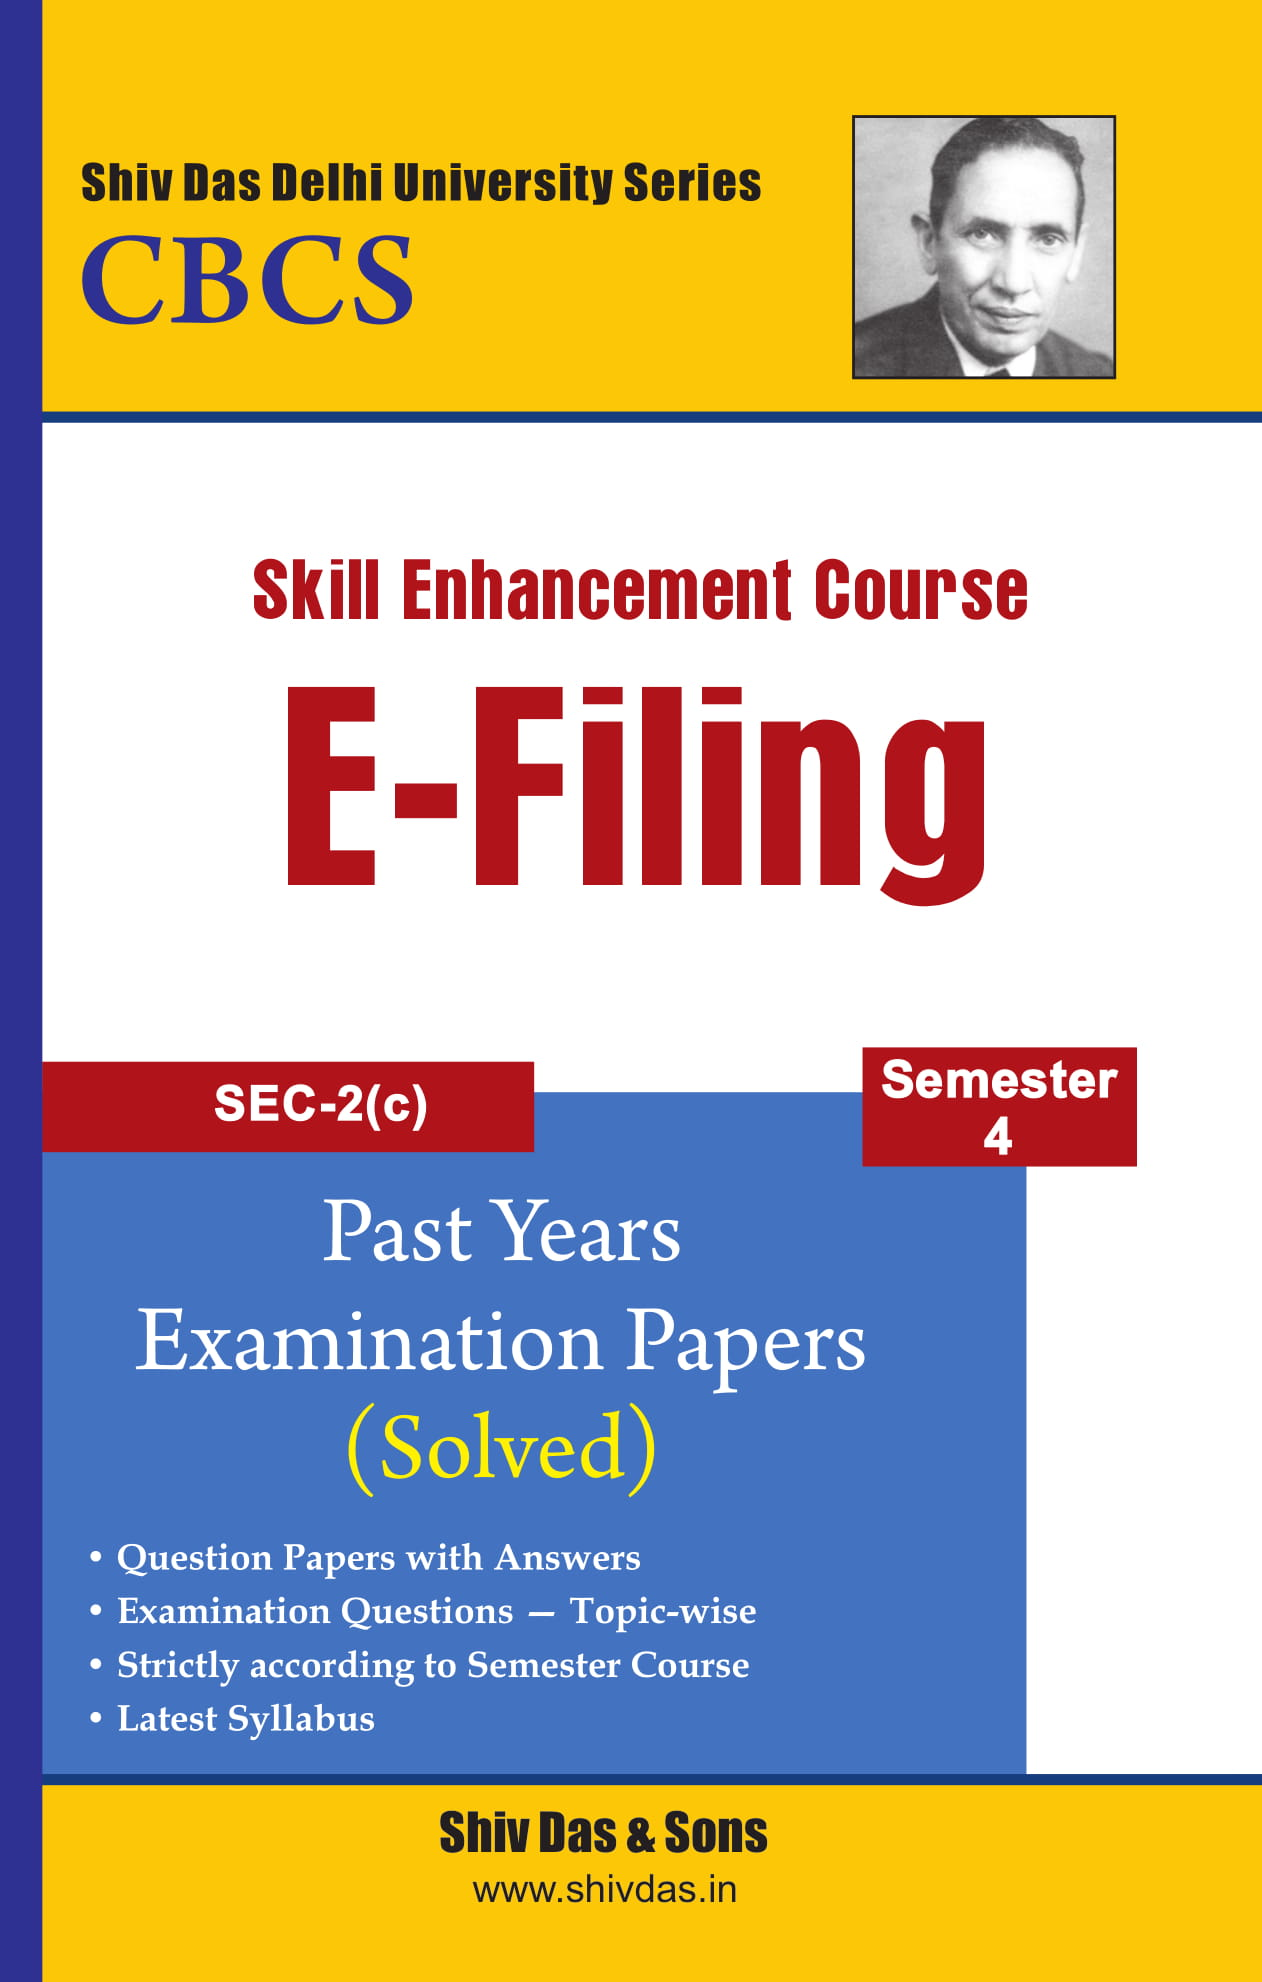 E-Filing for B.Com Hons Semester 4